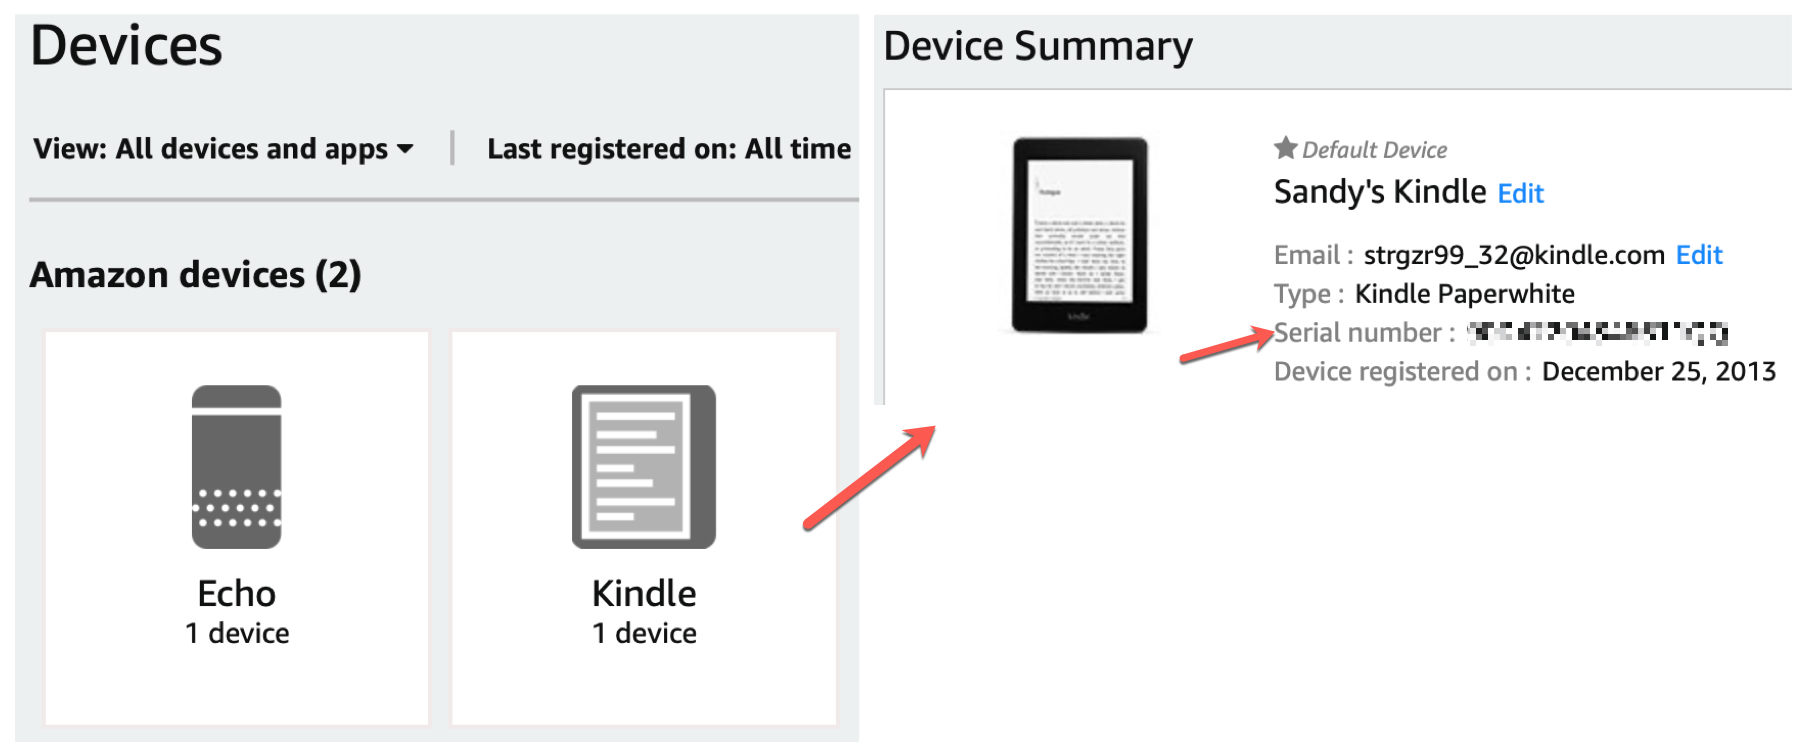 Kindle Paperwhite Serial Number on Amazon